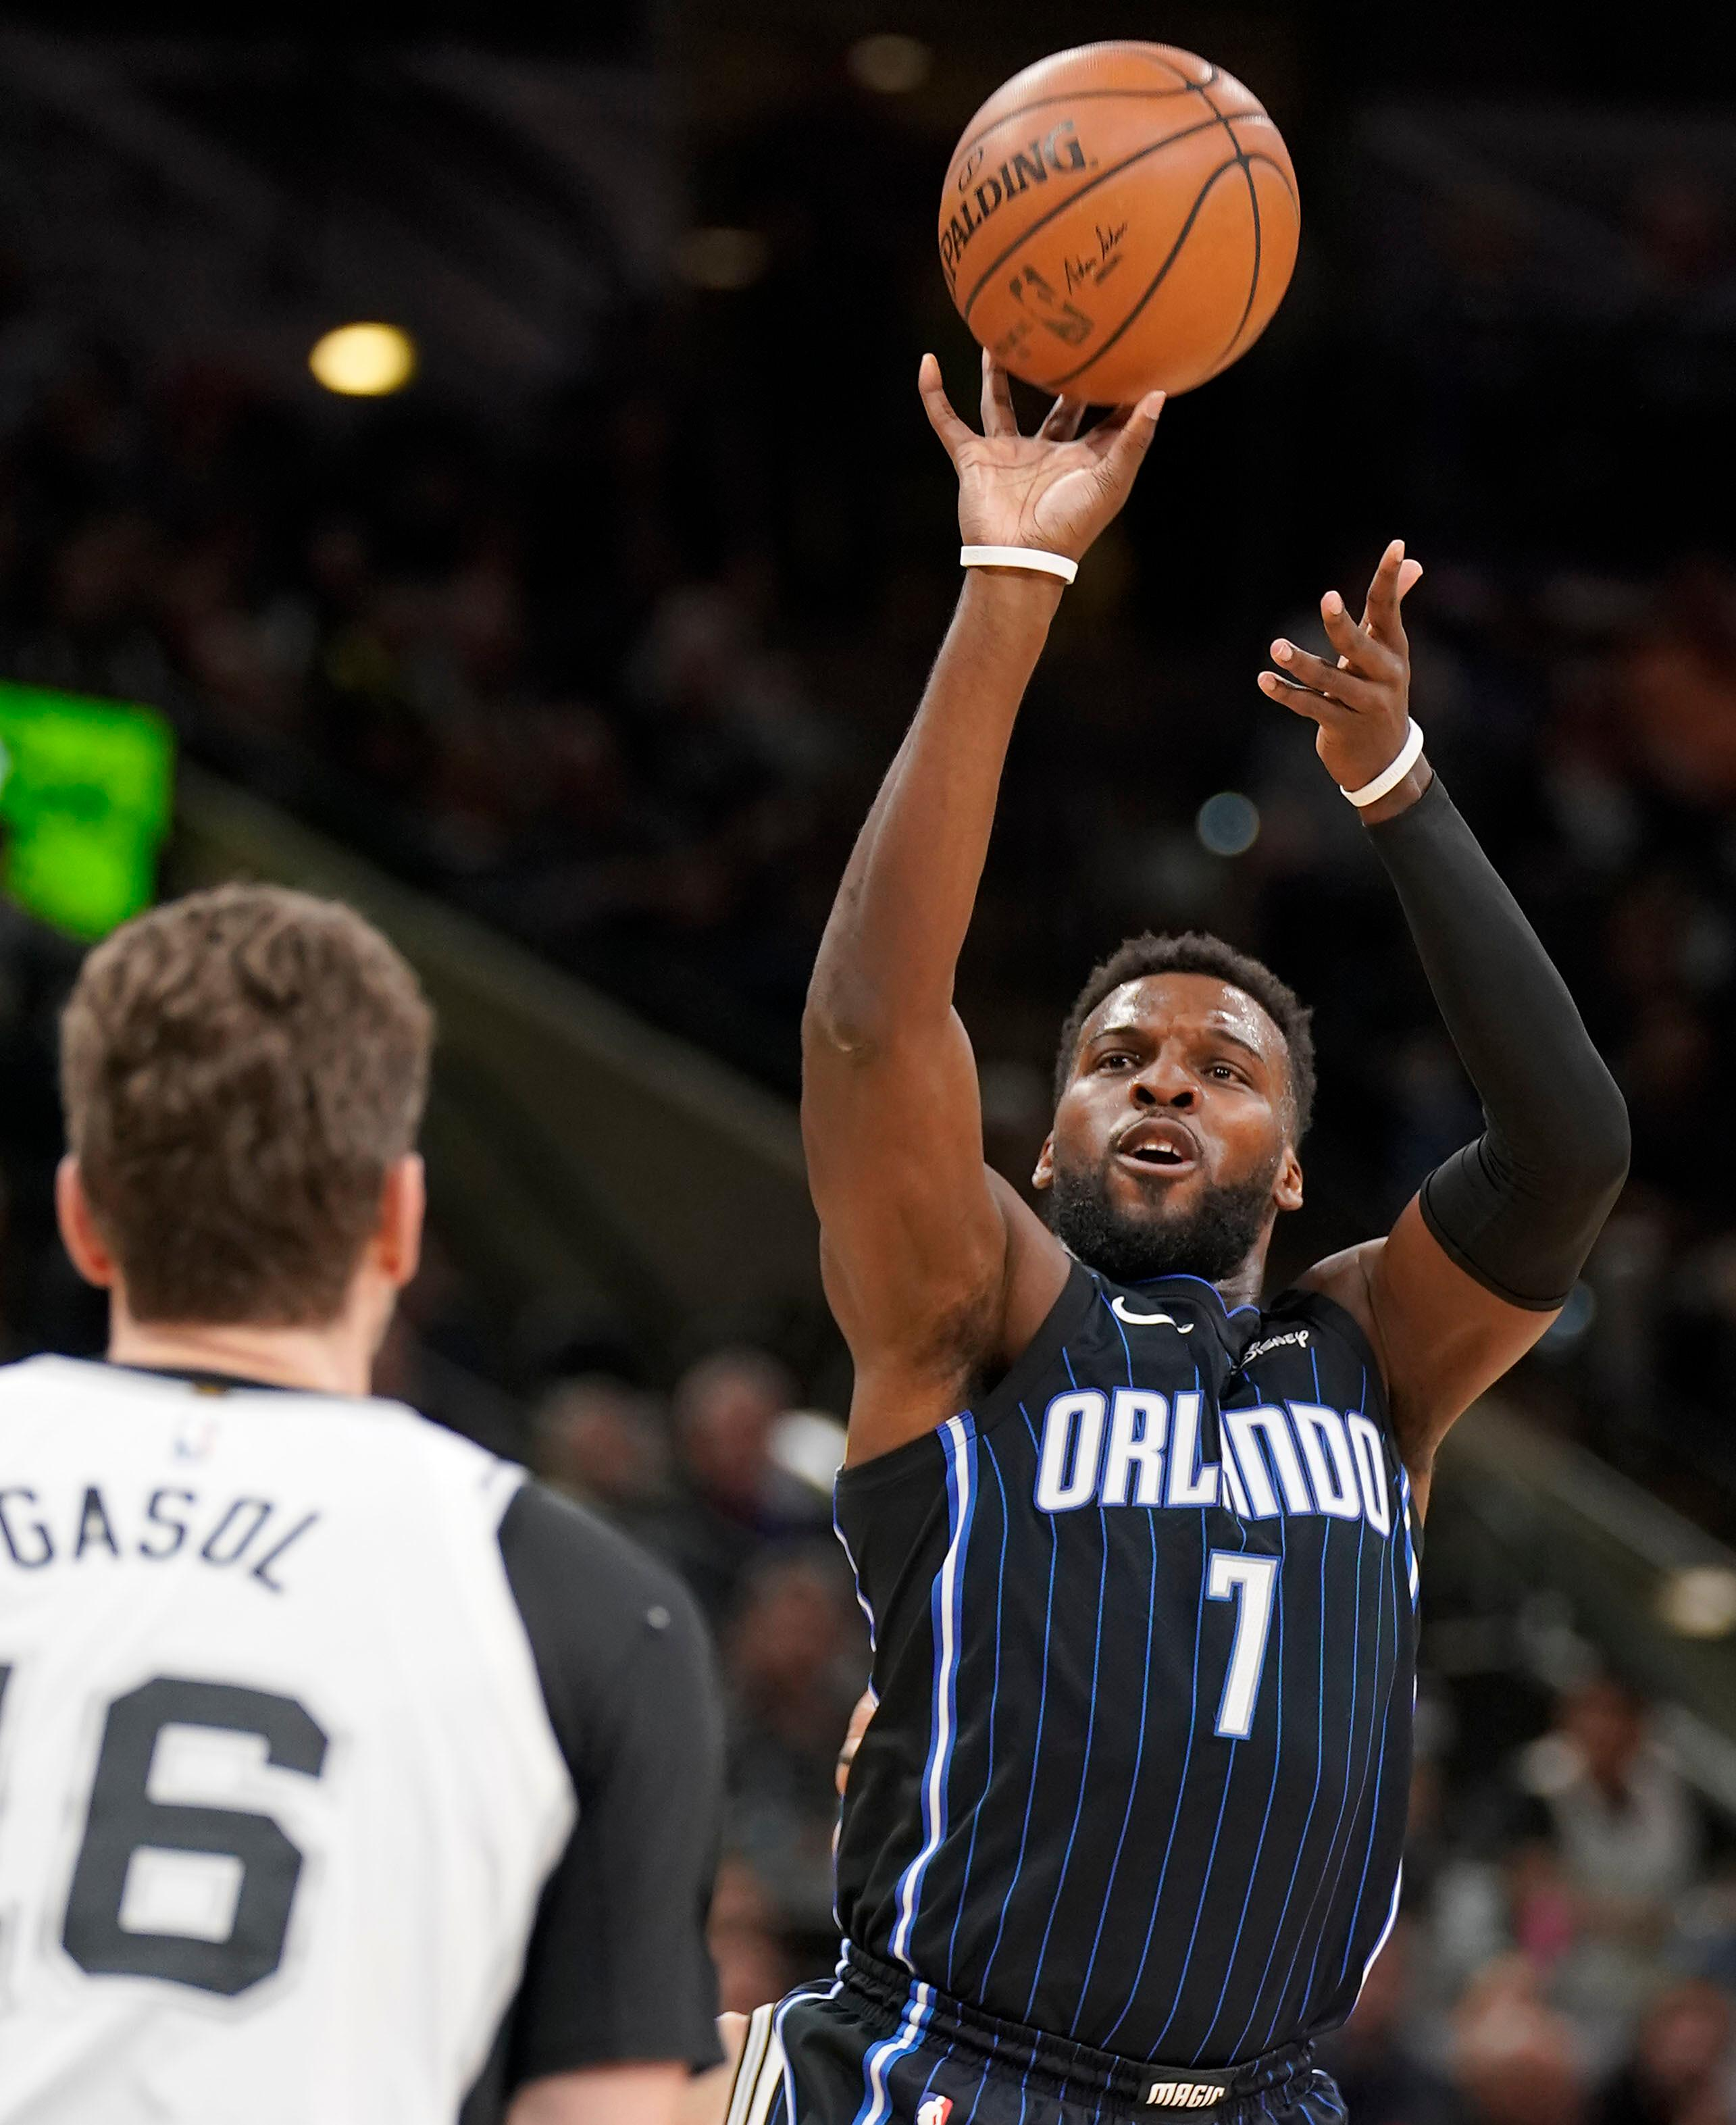 Orlando Magic's Shelvin Mack (7) shoots against San Antonio Spurs' Pau Gasol during the first half of an NBA basketball game, Tuesday, March 13, 2018, in San Antonio. (AP Photo/Darren Abate)